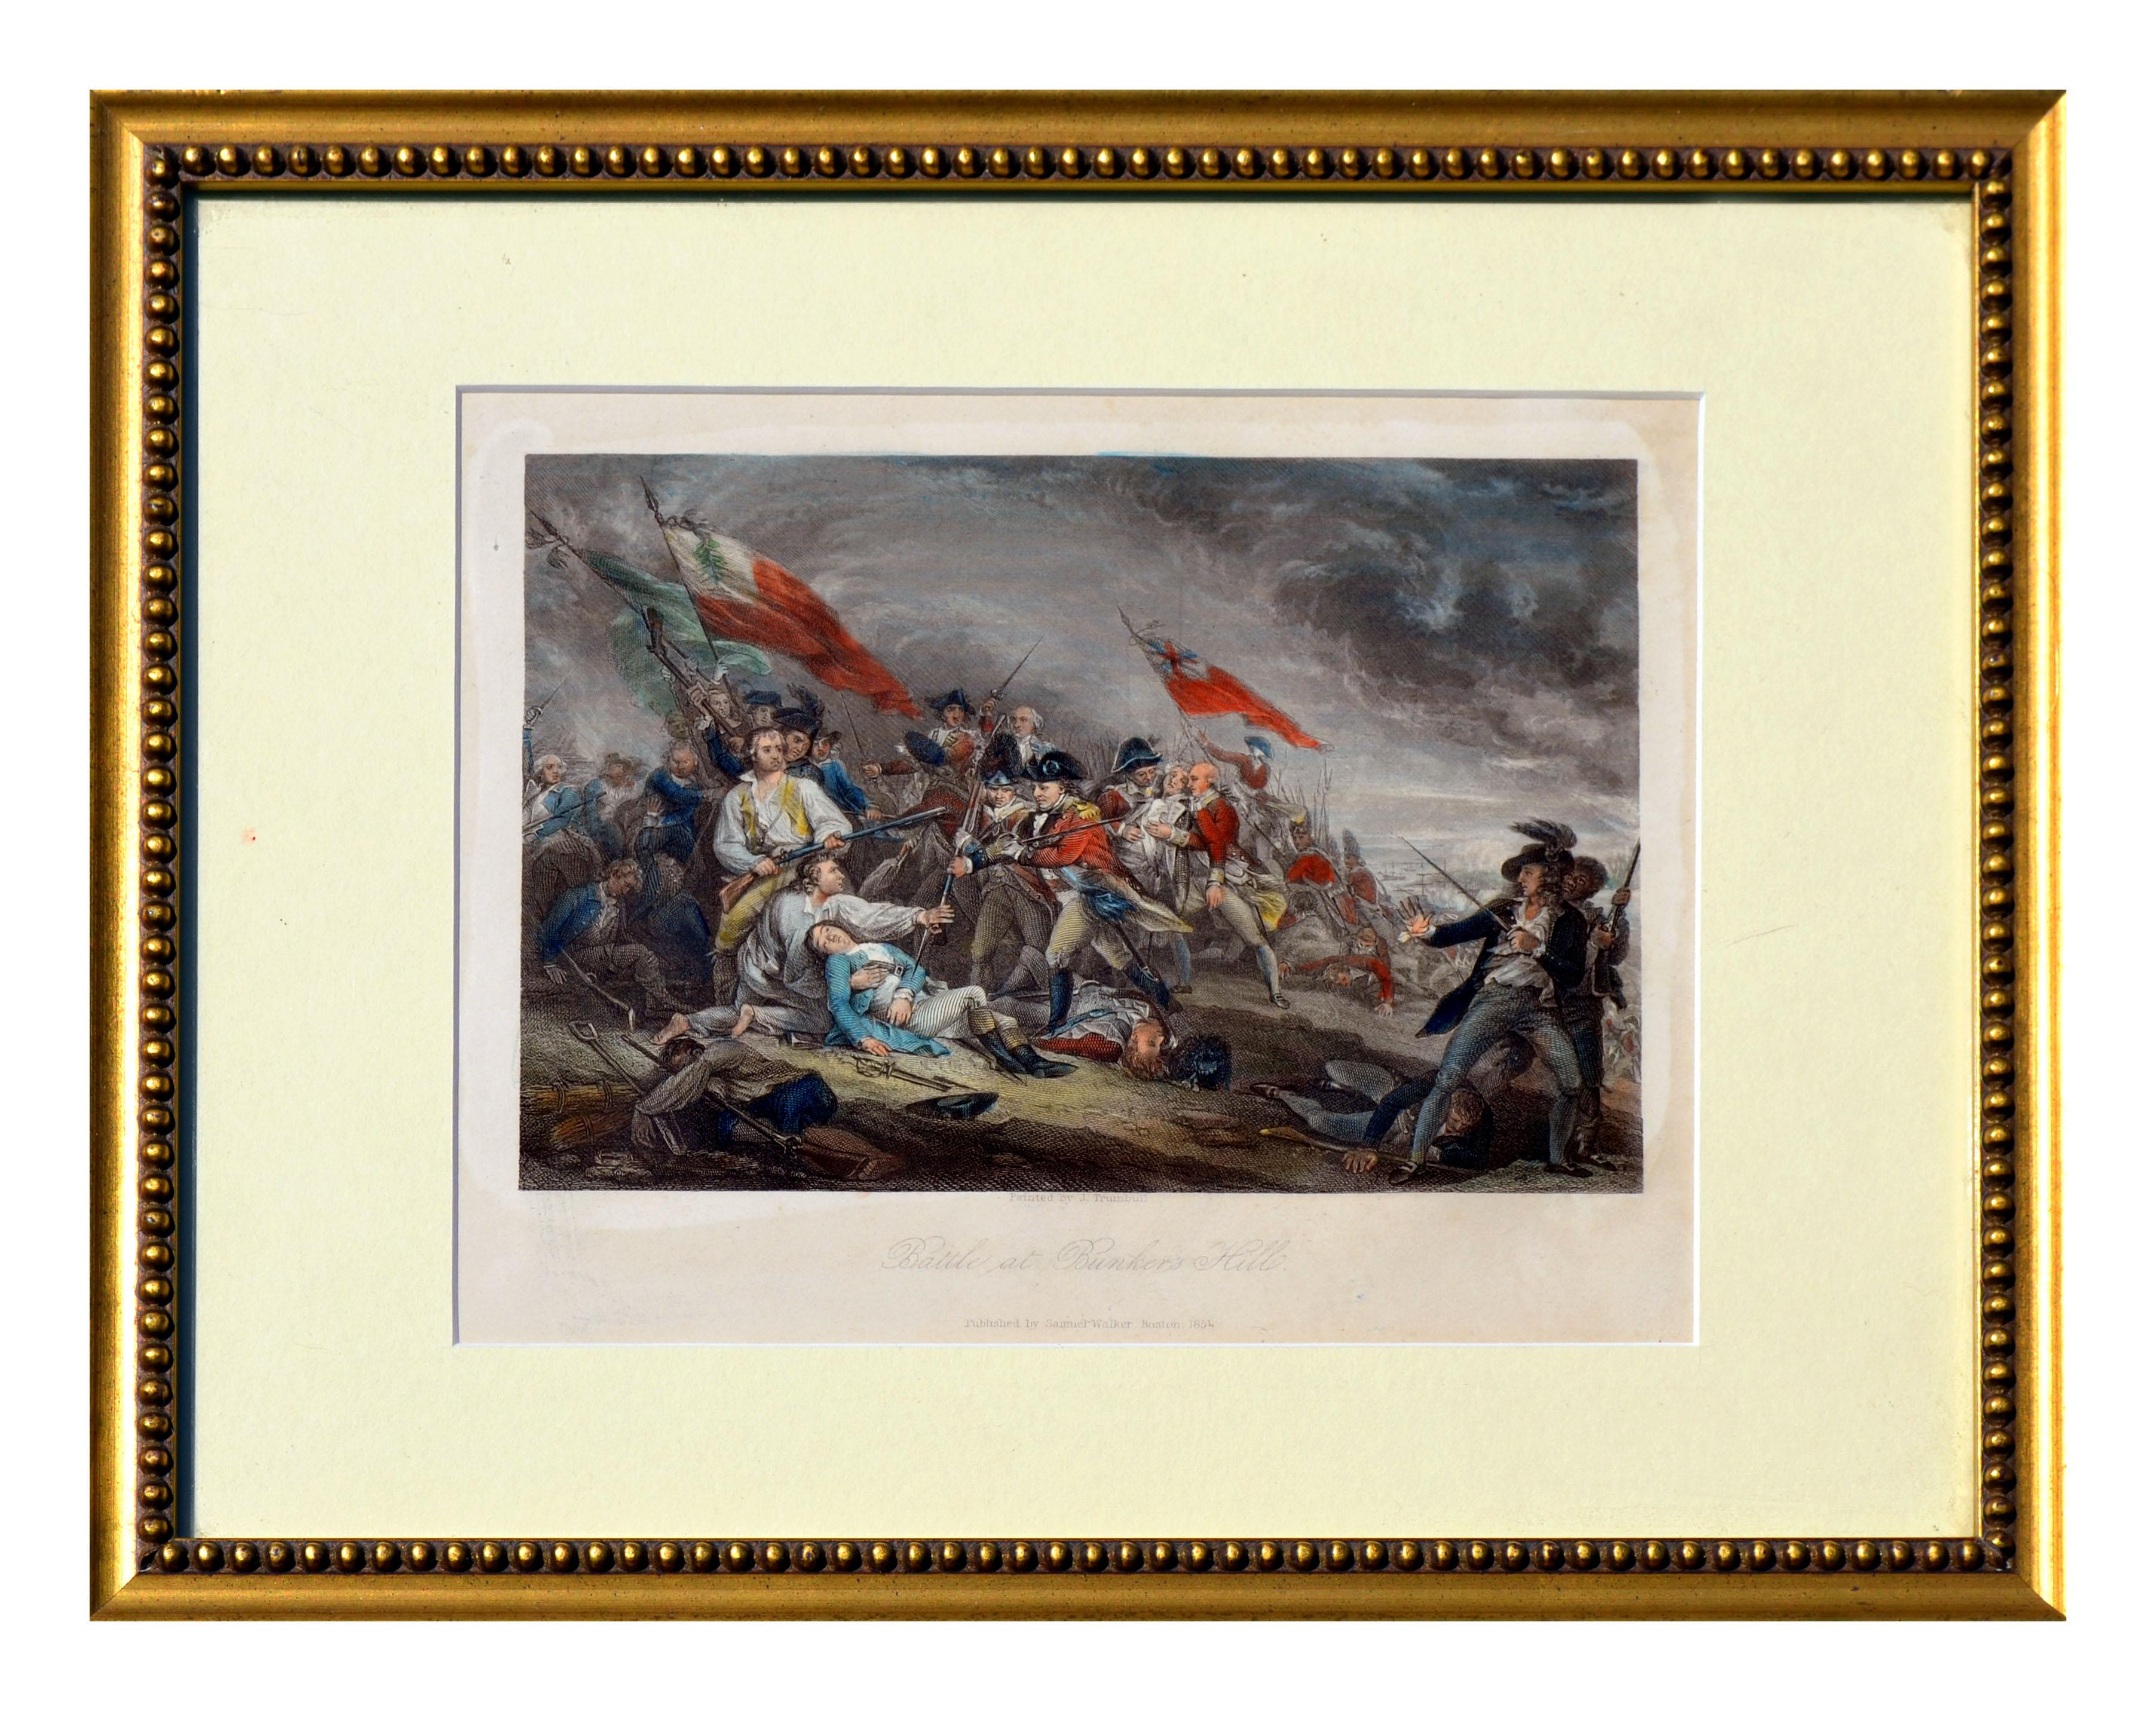 Battle at Bunker Hill - Hand Colored Engraving